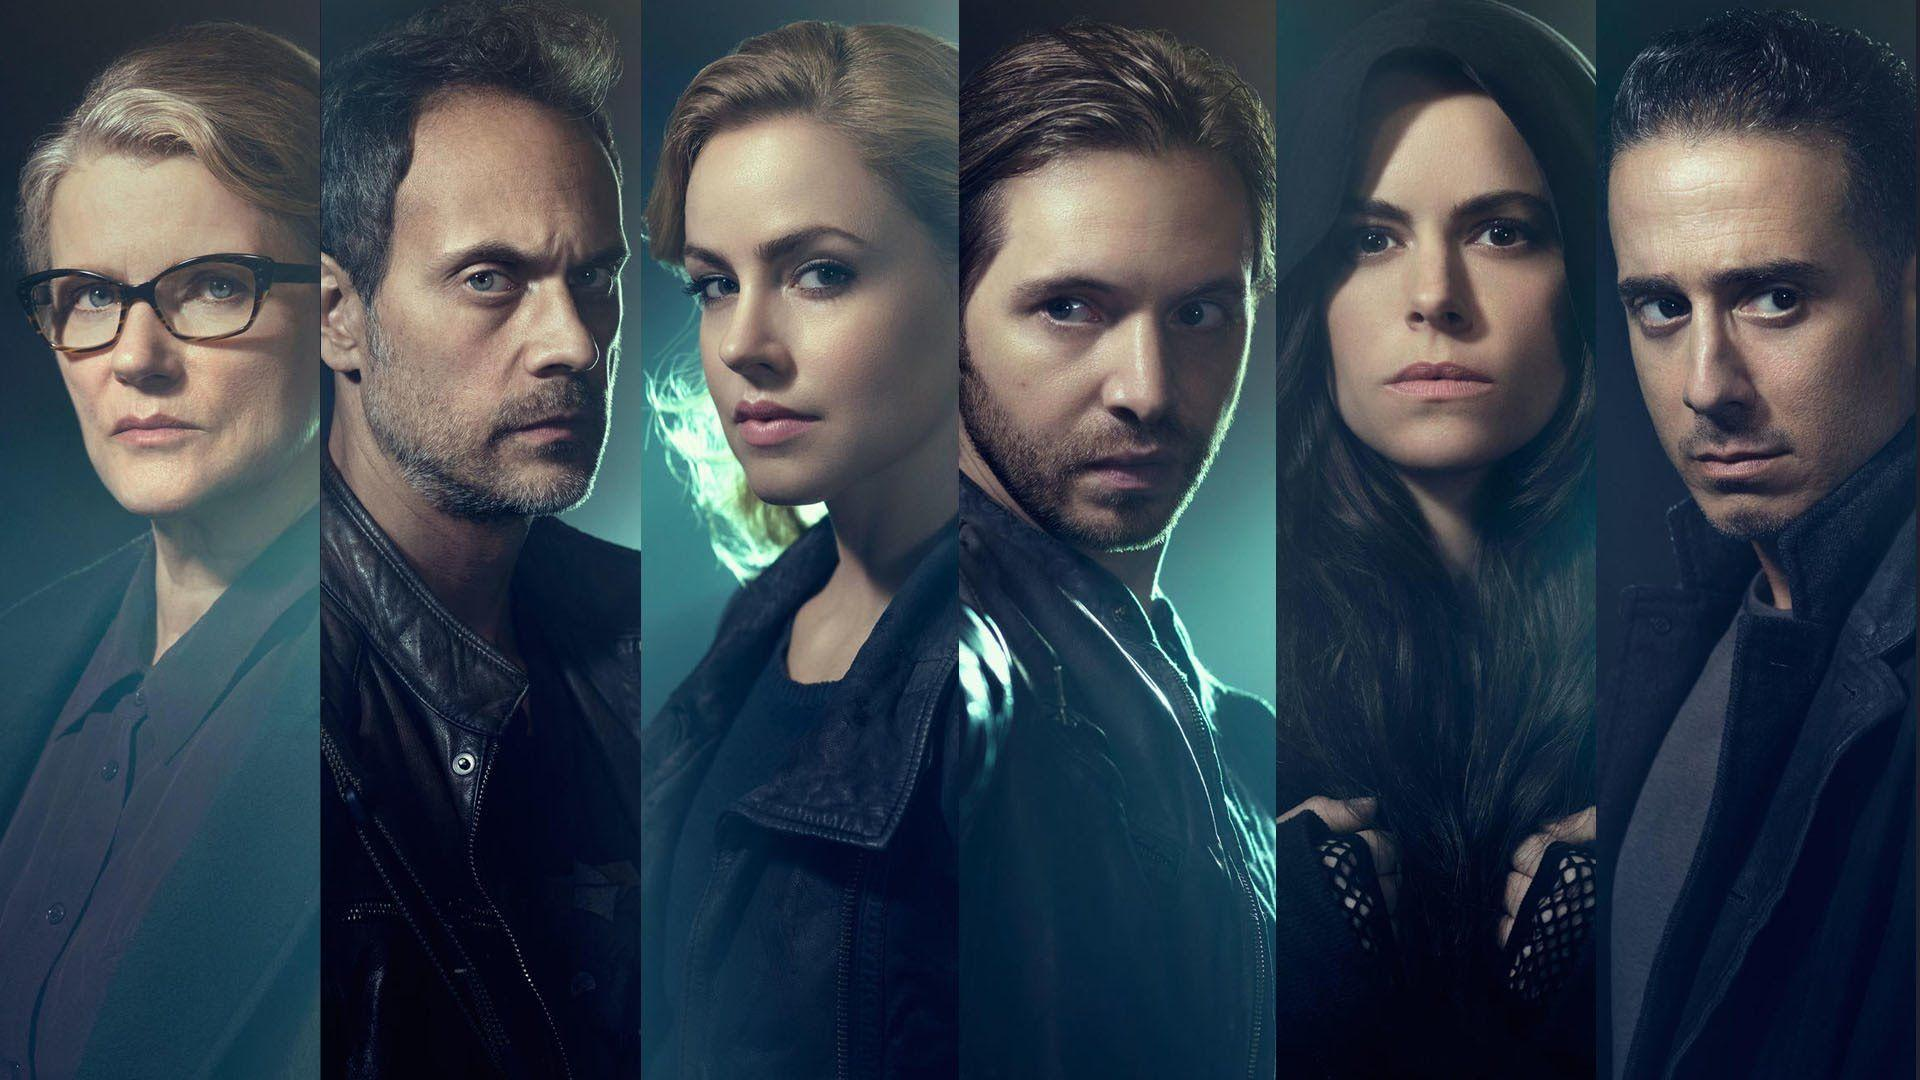 12 Monkeys Tv Show | Tv Shows HD 4k Wallpapers